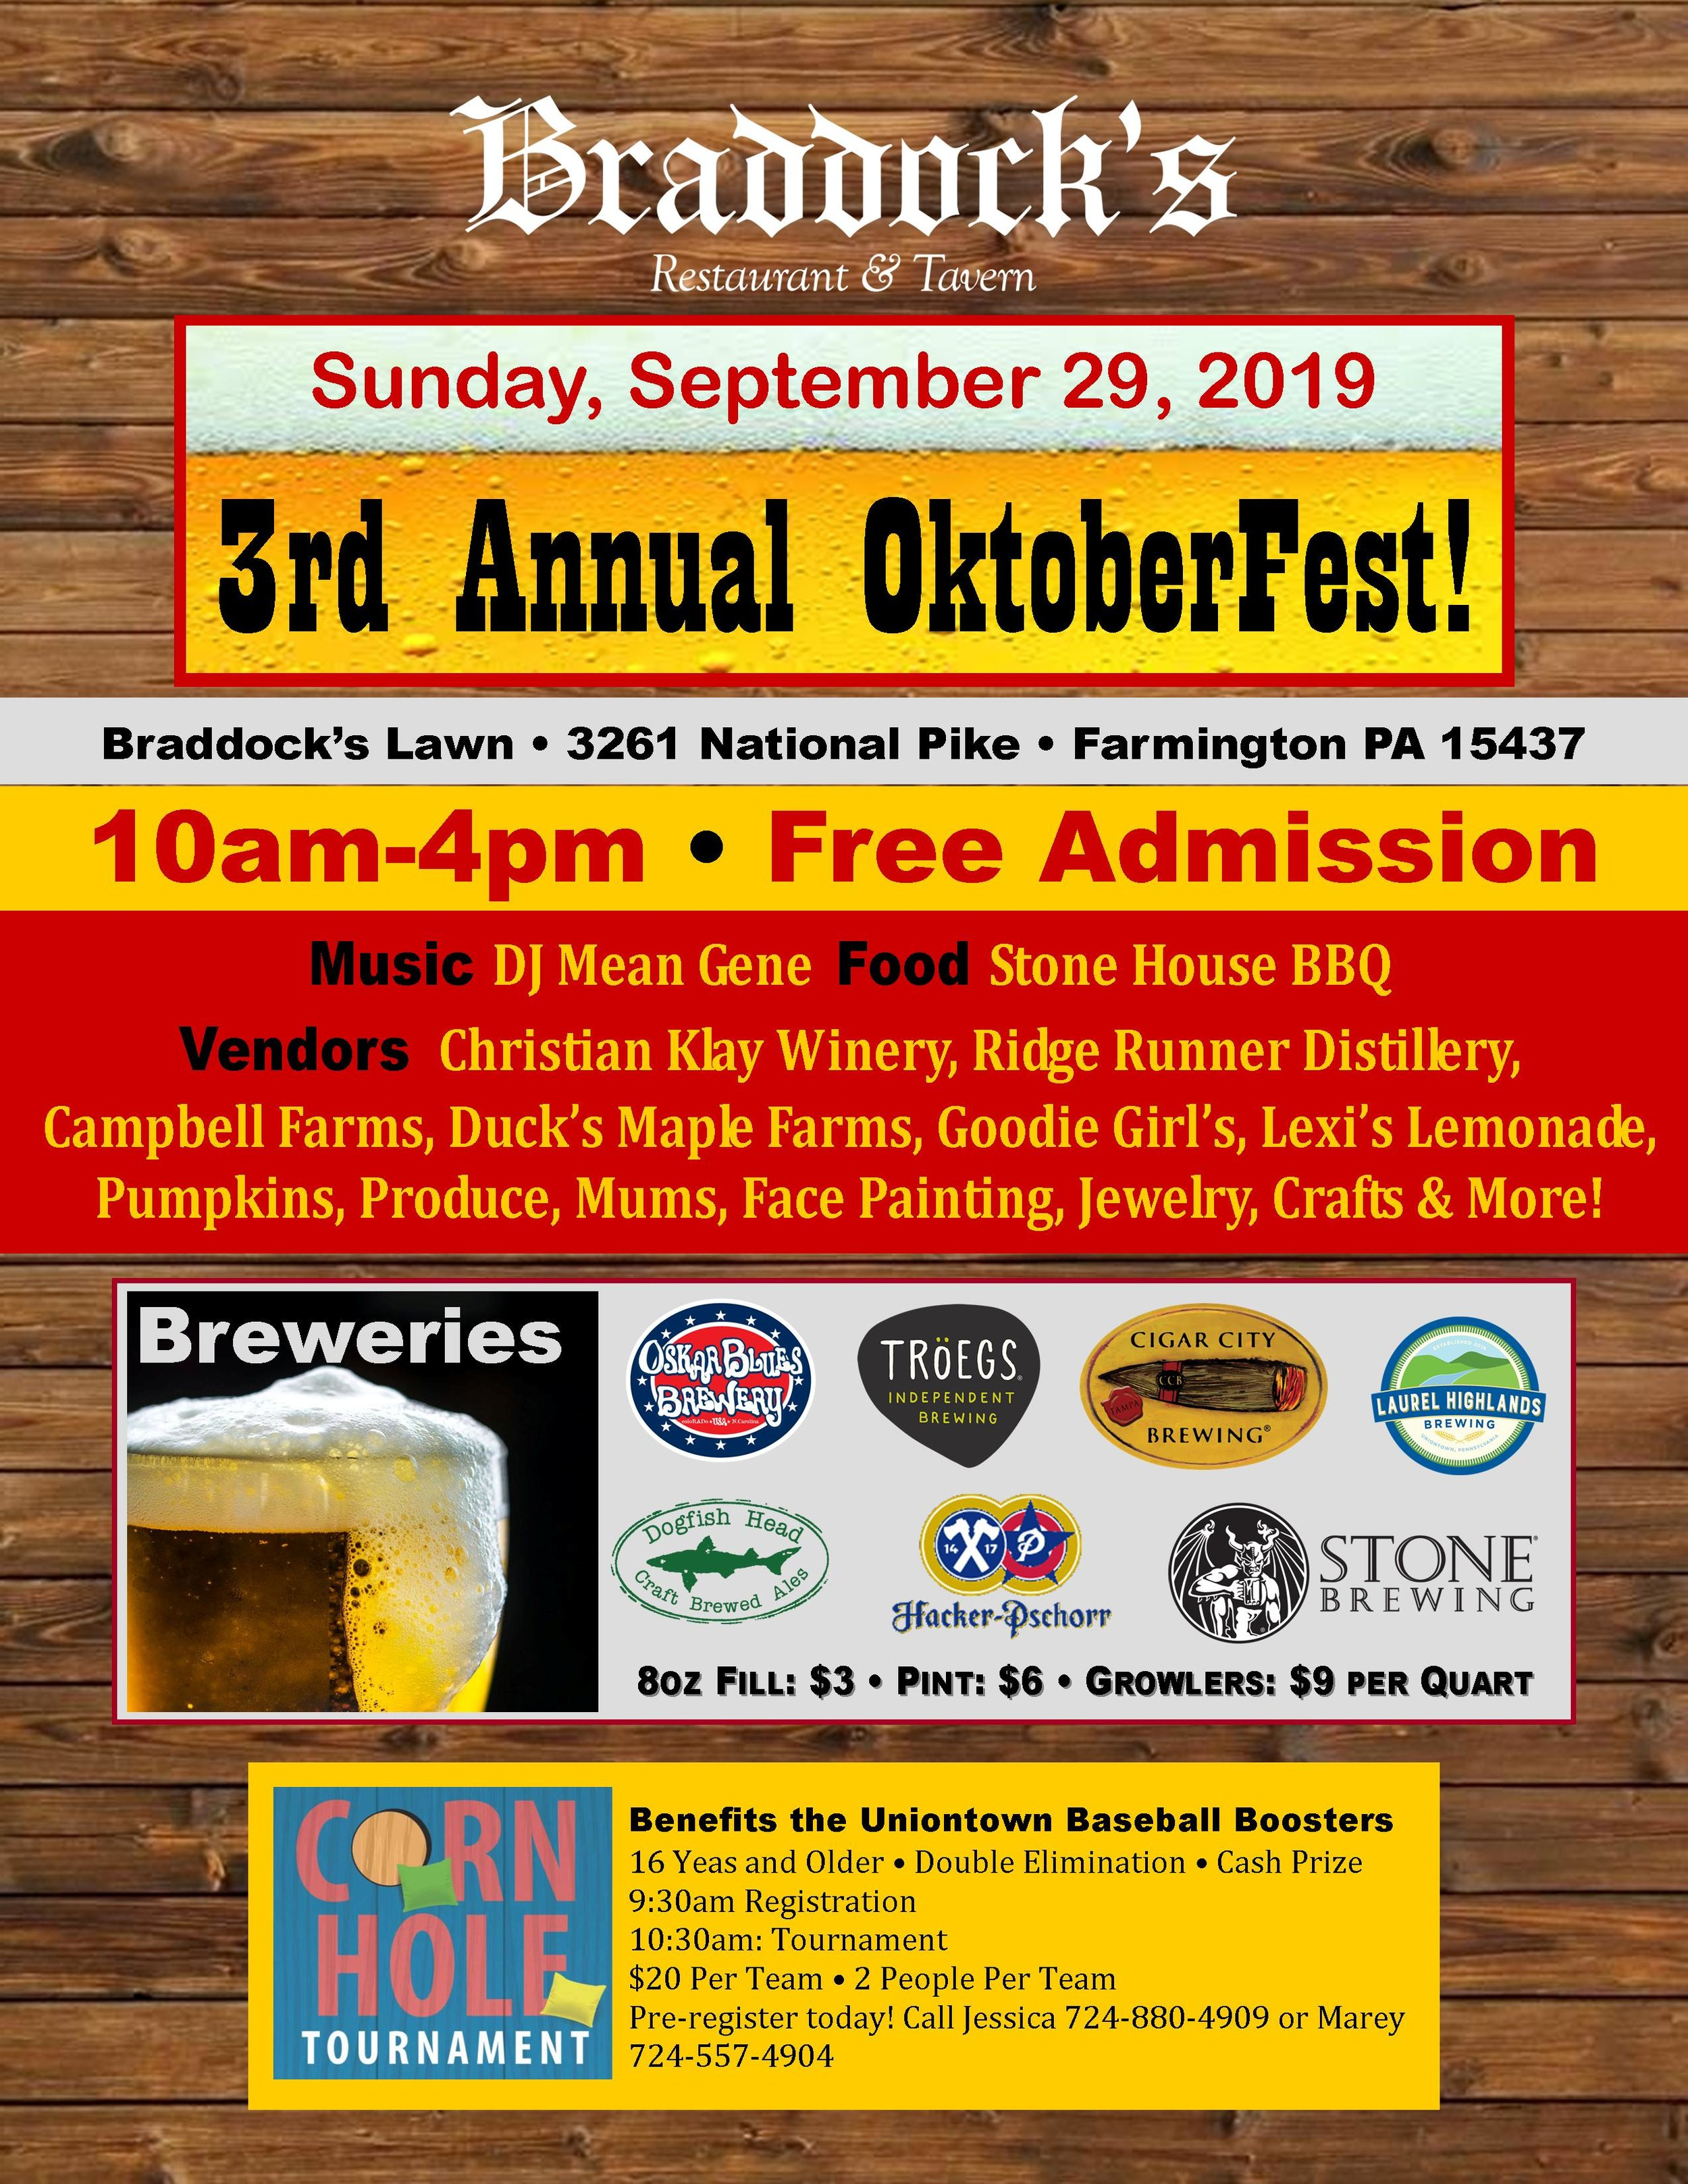 Free Admission!   Music DJ Mean Gene!  Food Stone House BBQ!   Vendors!  Christian Klay Winery, Ridge Runner Distillery,Campbell Farms, Duck's Maple Farms, Goodie Girl's, Lexi's Lemonade, Pumpkins, Produce, Mums, Face Painting, Jewelry, Crafts & More!   Breweries!  Laurel Highlands, Oskar Blues Brewery, Dogfish Head, Troegs, Hacker-Pschorr, Cigar City, Stone   Corn Hole Tournament!  Benefits the Uniontown Baseball Boosters 16 Yeas and Older Double Elimination - Cash Prize 9:30am Registration - 10:30am: Tournament $20 Per Team - 2 People Per Team Pre-register today! Call Jessica 724-880-4909 or Marey 724-557-4904